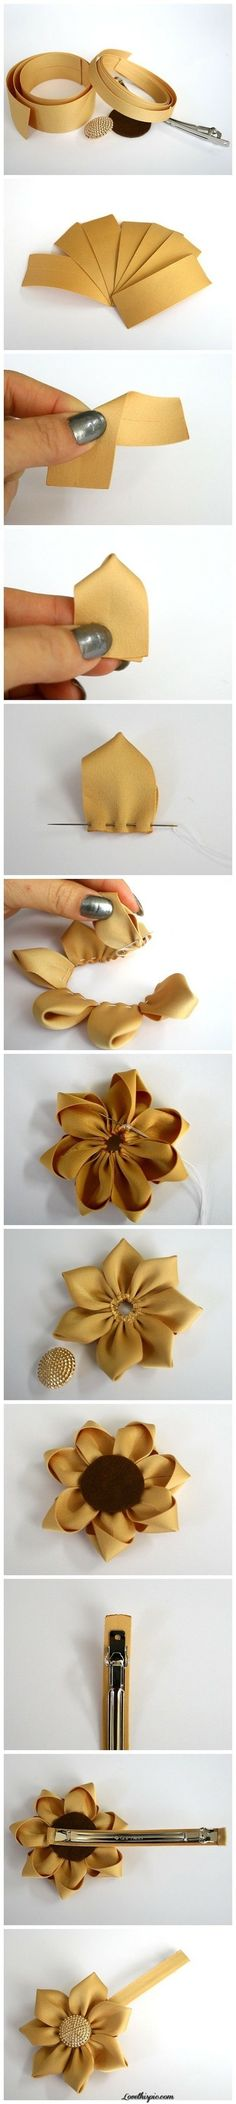 DIY Hair Bow crafts craft ideas easy crafts diy ideas diy crafts easy diy fun diy craft fashion fashion diy diy accessories craft accessories